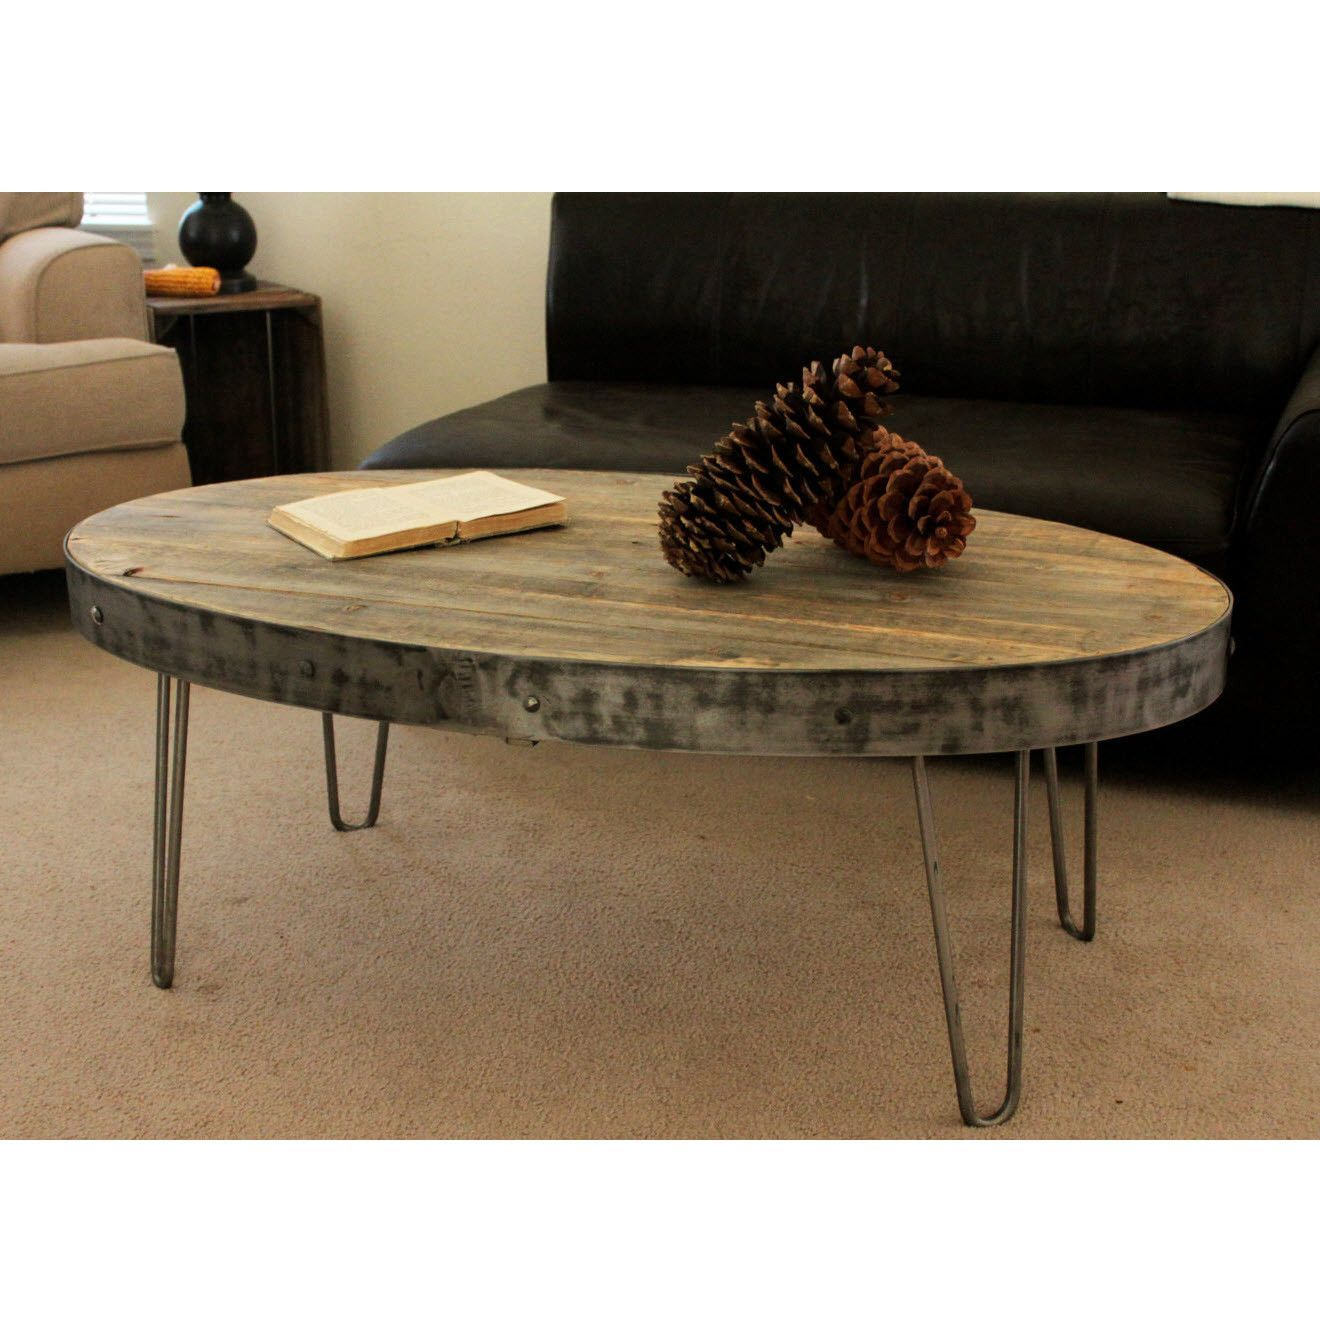 Reclaimed Wood Industrial Round Coffee Table: Reclaimed Wood Oval Industrial Coffee Table